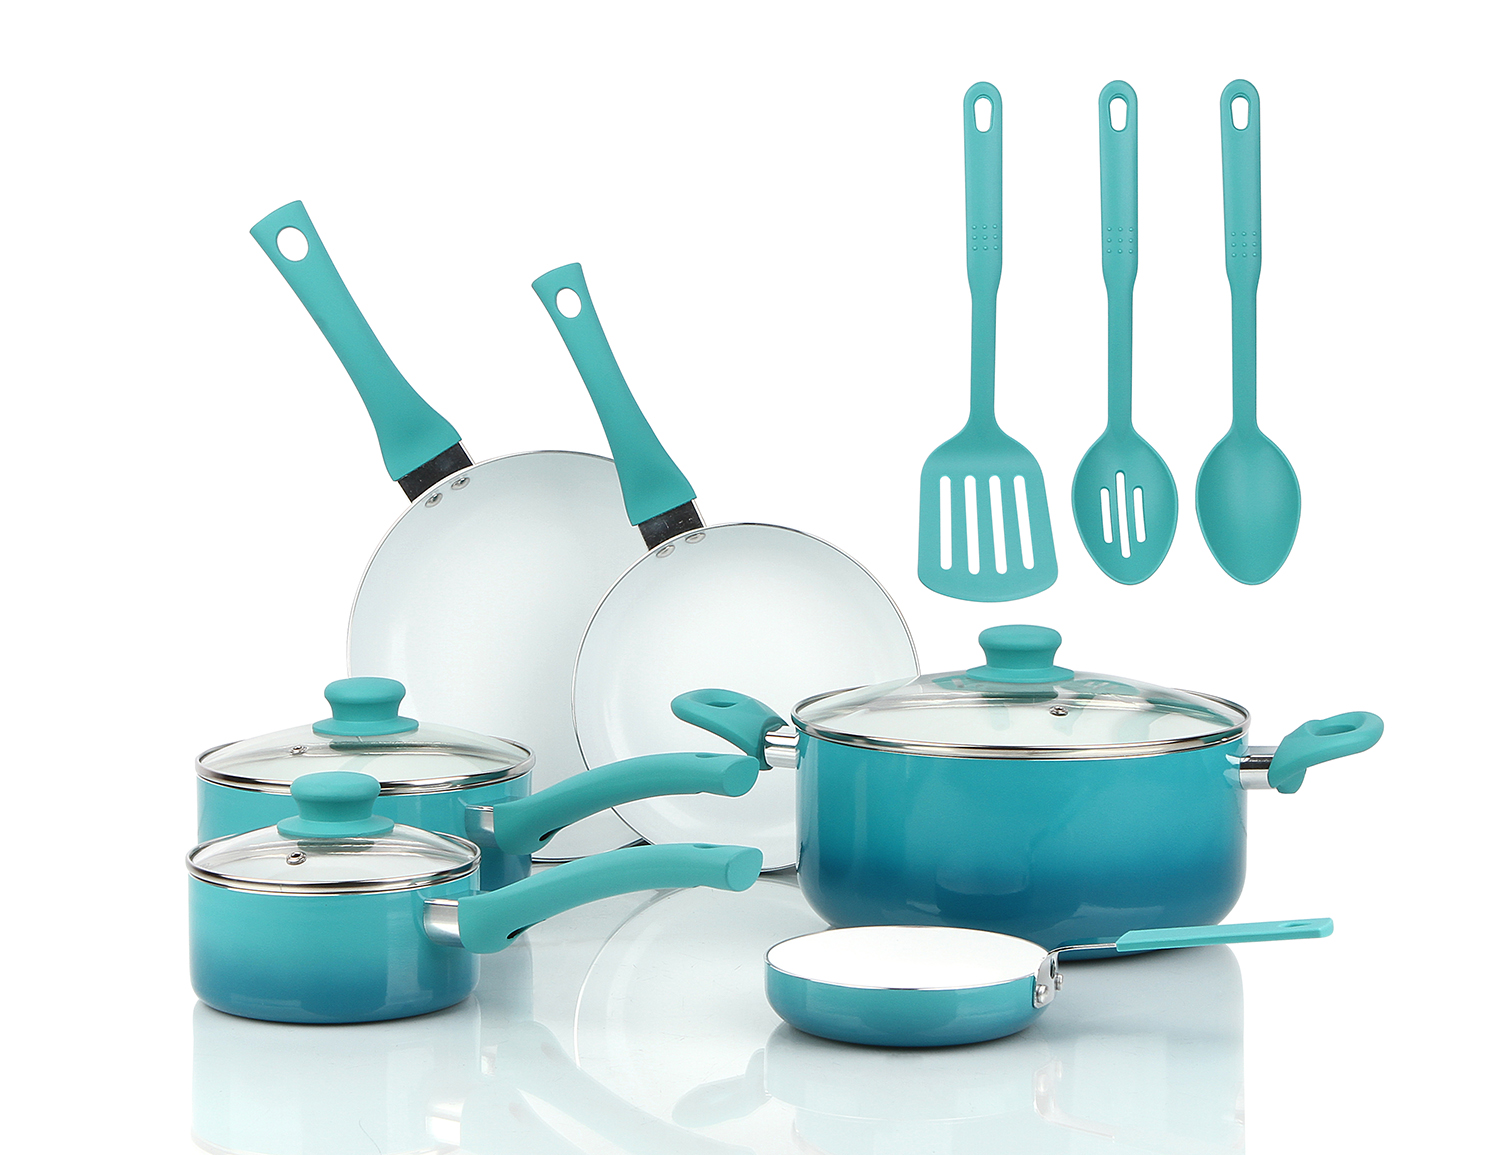 Nonstick Cookware Set 12 Piece Kitchen Ceramic Pots and Pans with Lids Cooking